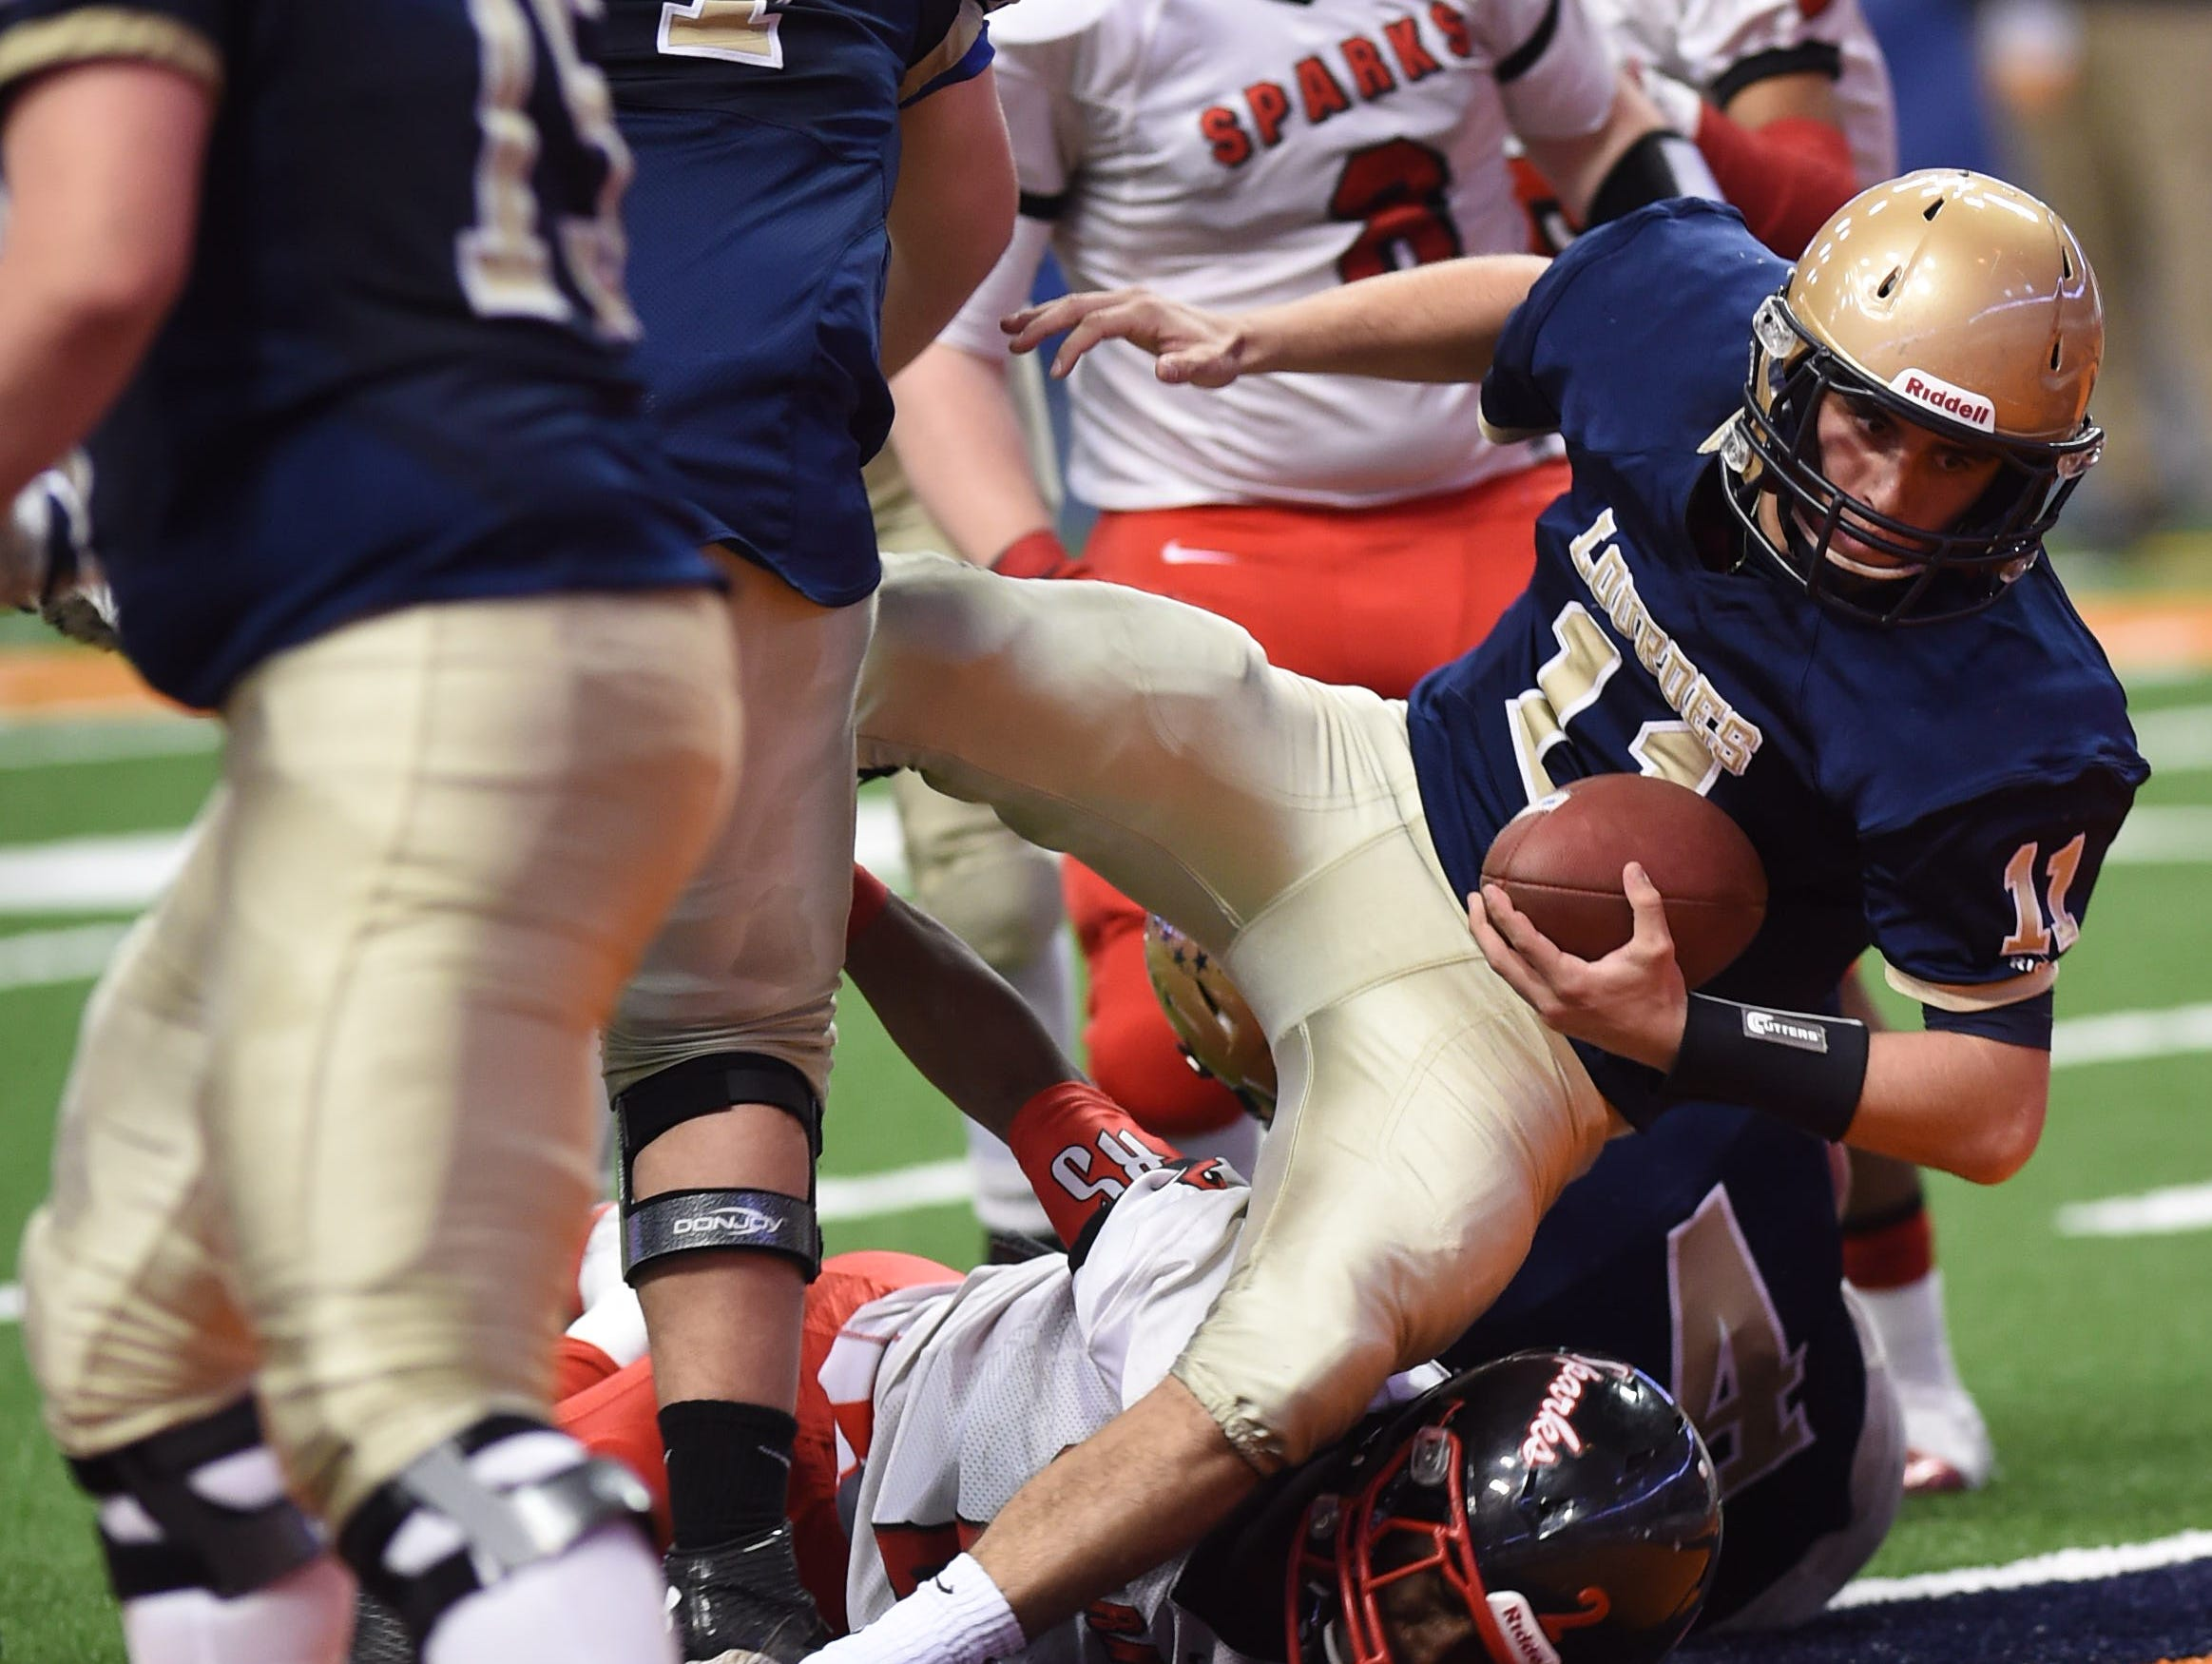 Lourdes' Luke Timm carries the ball into the end zone during the New York State Championship final versus South Park in Syracuse on Friday.